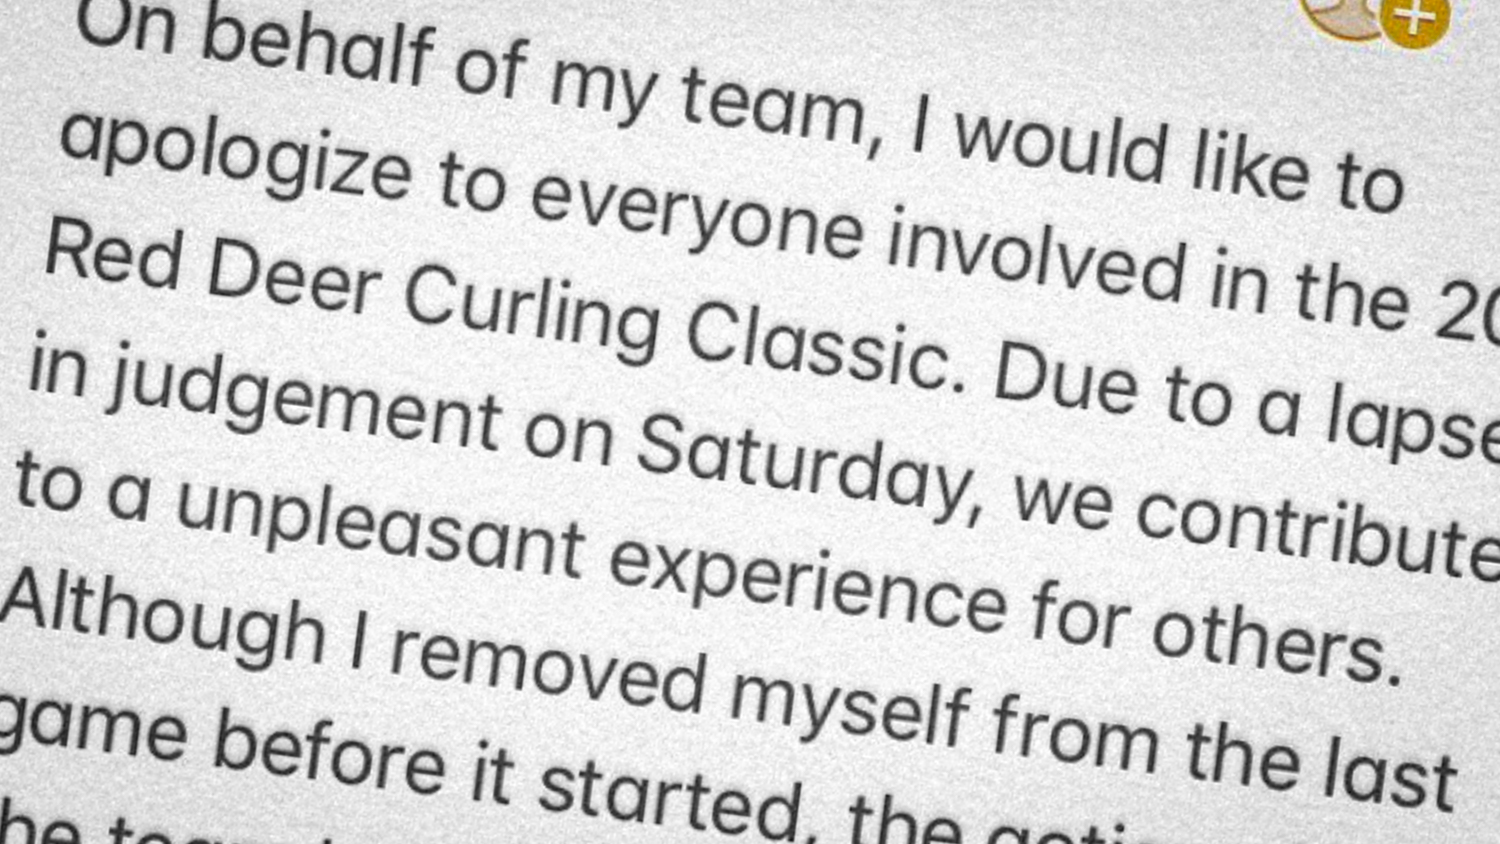 Text is seen from an apology tweeted by Jamie Koe following his rink's expulsion from the 2018 Red Deer Curling Classic